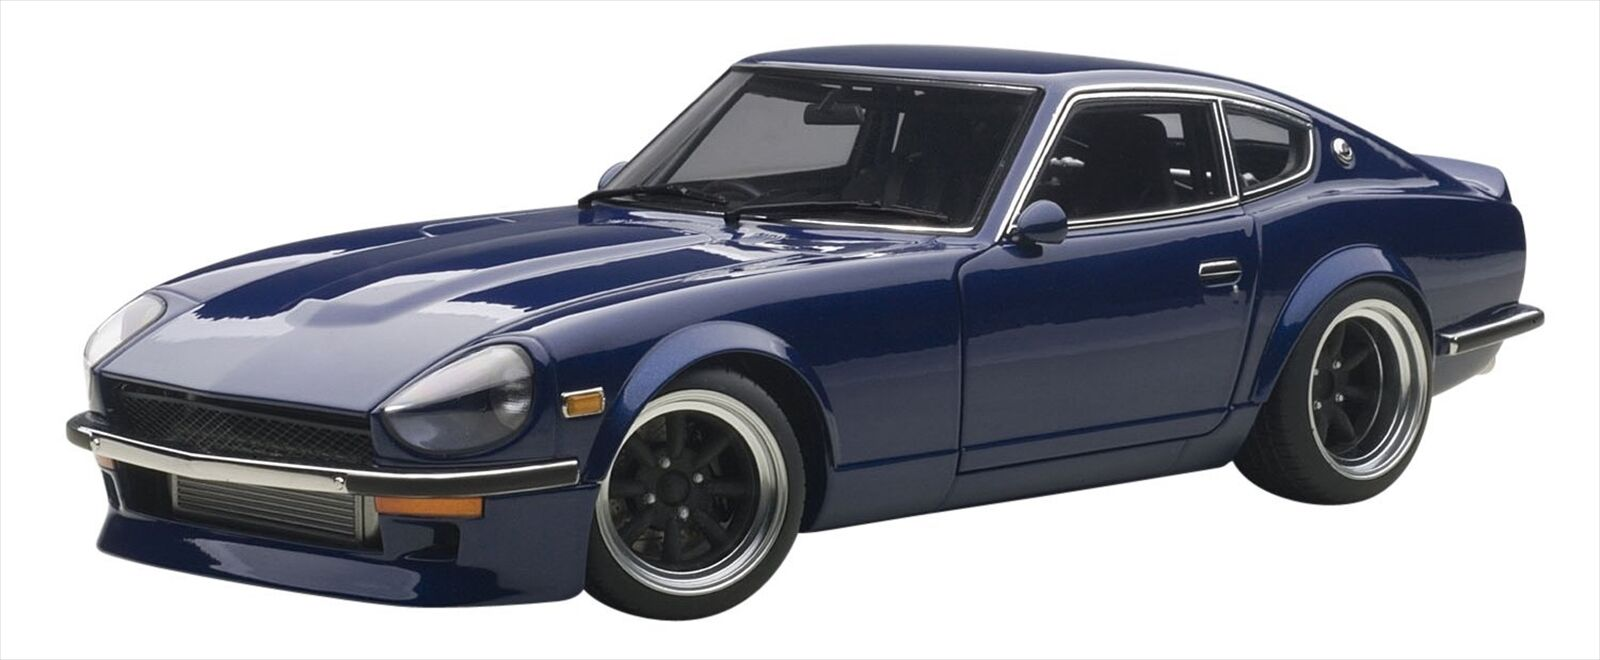 AUTOart 1 18 NISSAN FAIRLADY Z (S30)  Racing Midnight Devil Z Diecast voiture 77451  sortie d'exportation